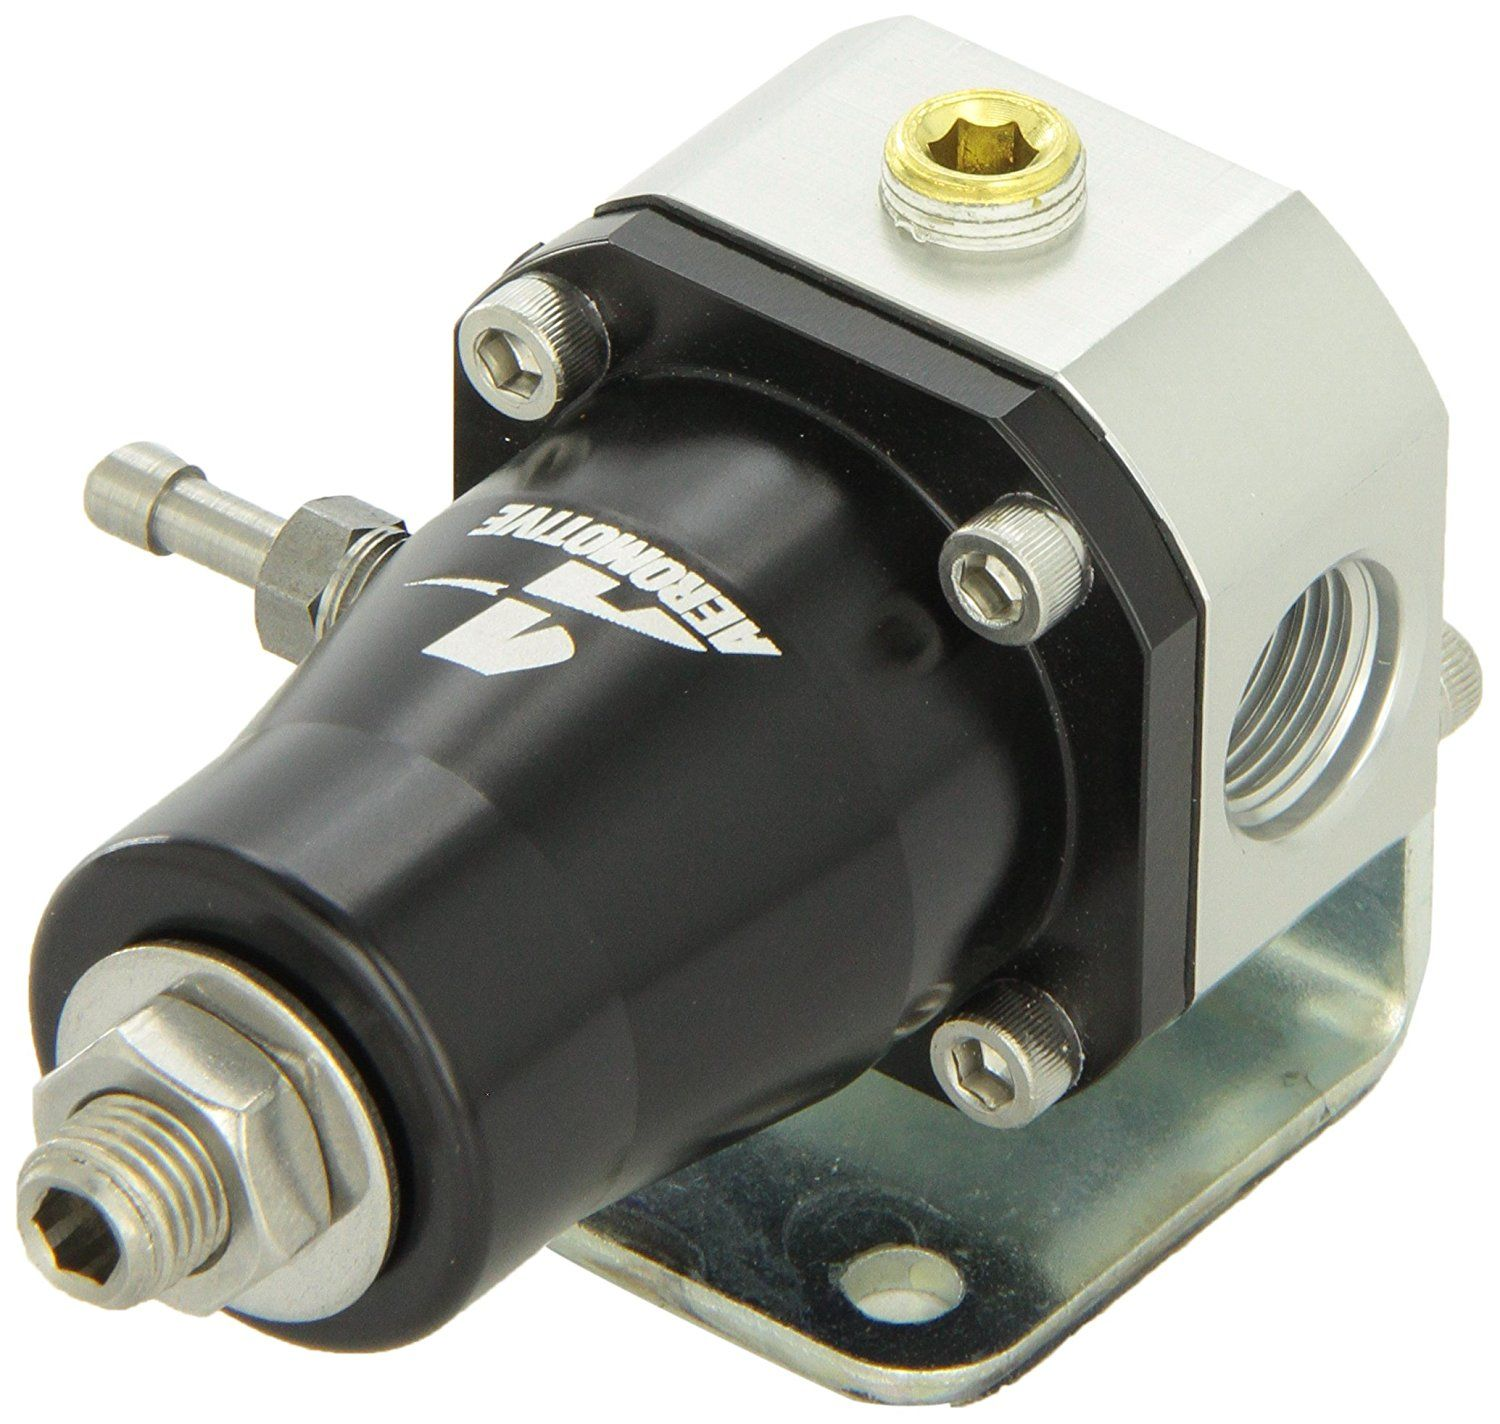 Best Fuel Pressure Regulators & Whether You Need a New One